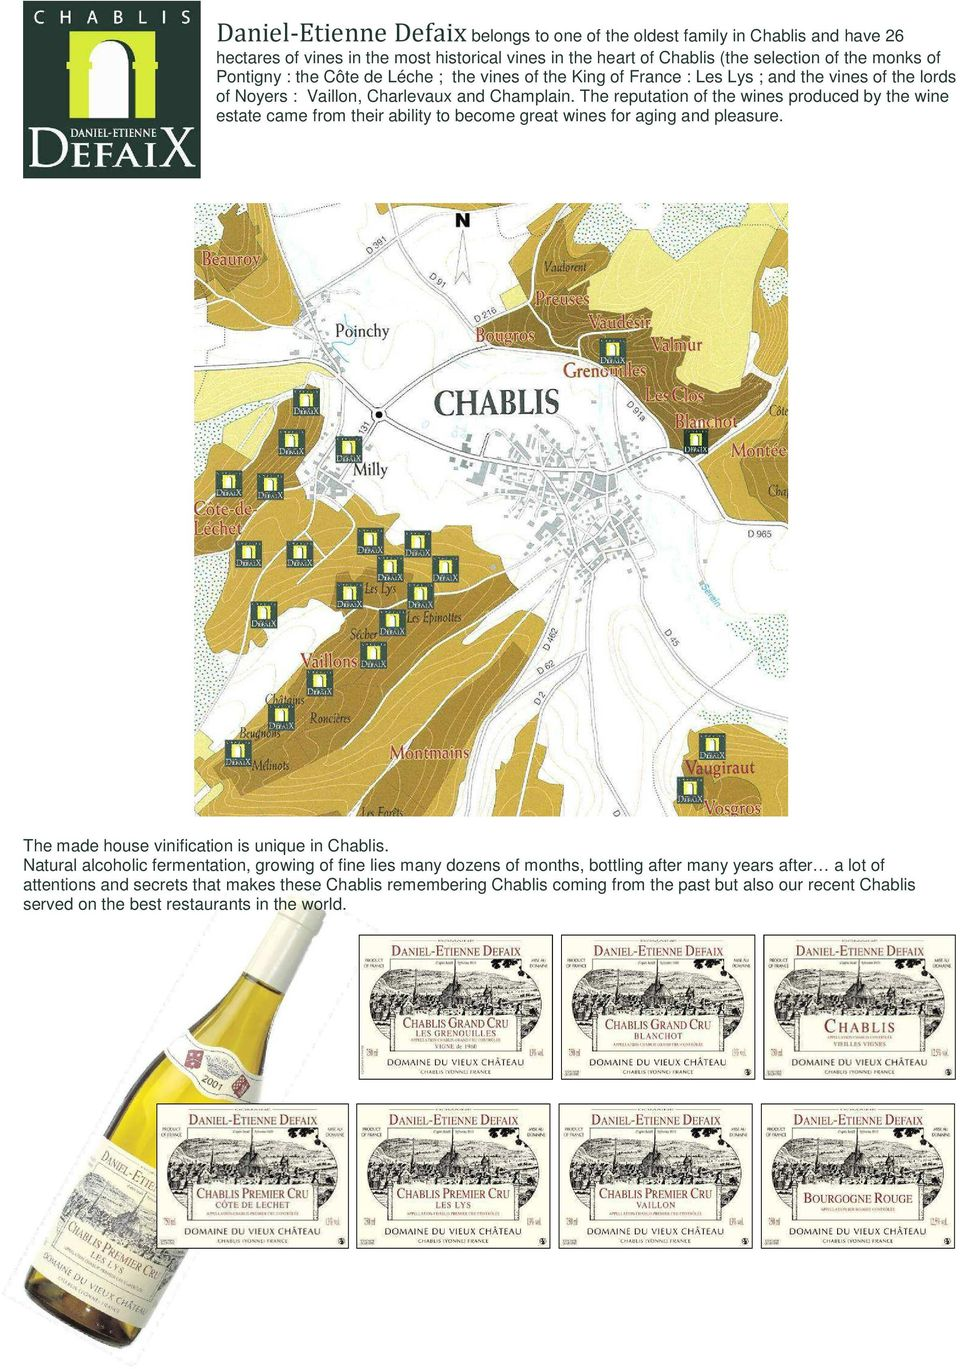 The reputation of the wines produced by the wine estate came from their ability to become great wines for aging and pleasure. The made house vinification is unique in Chablis.